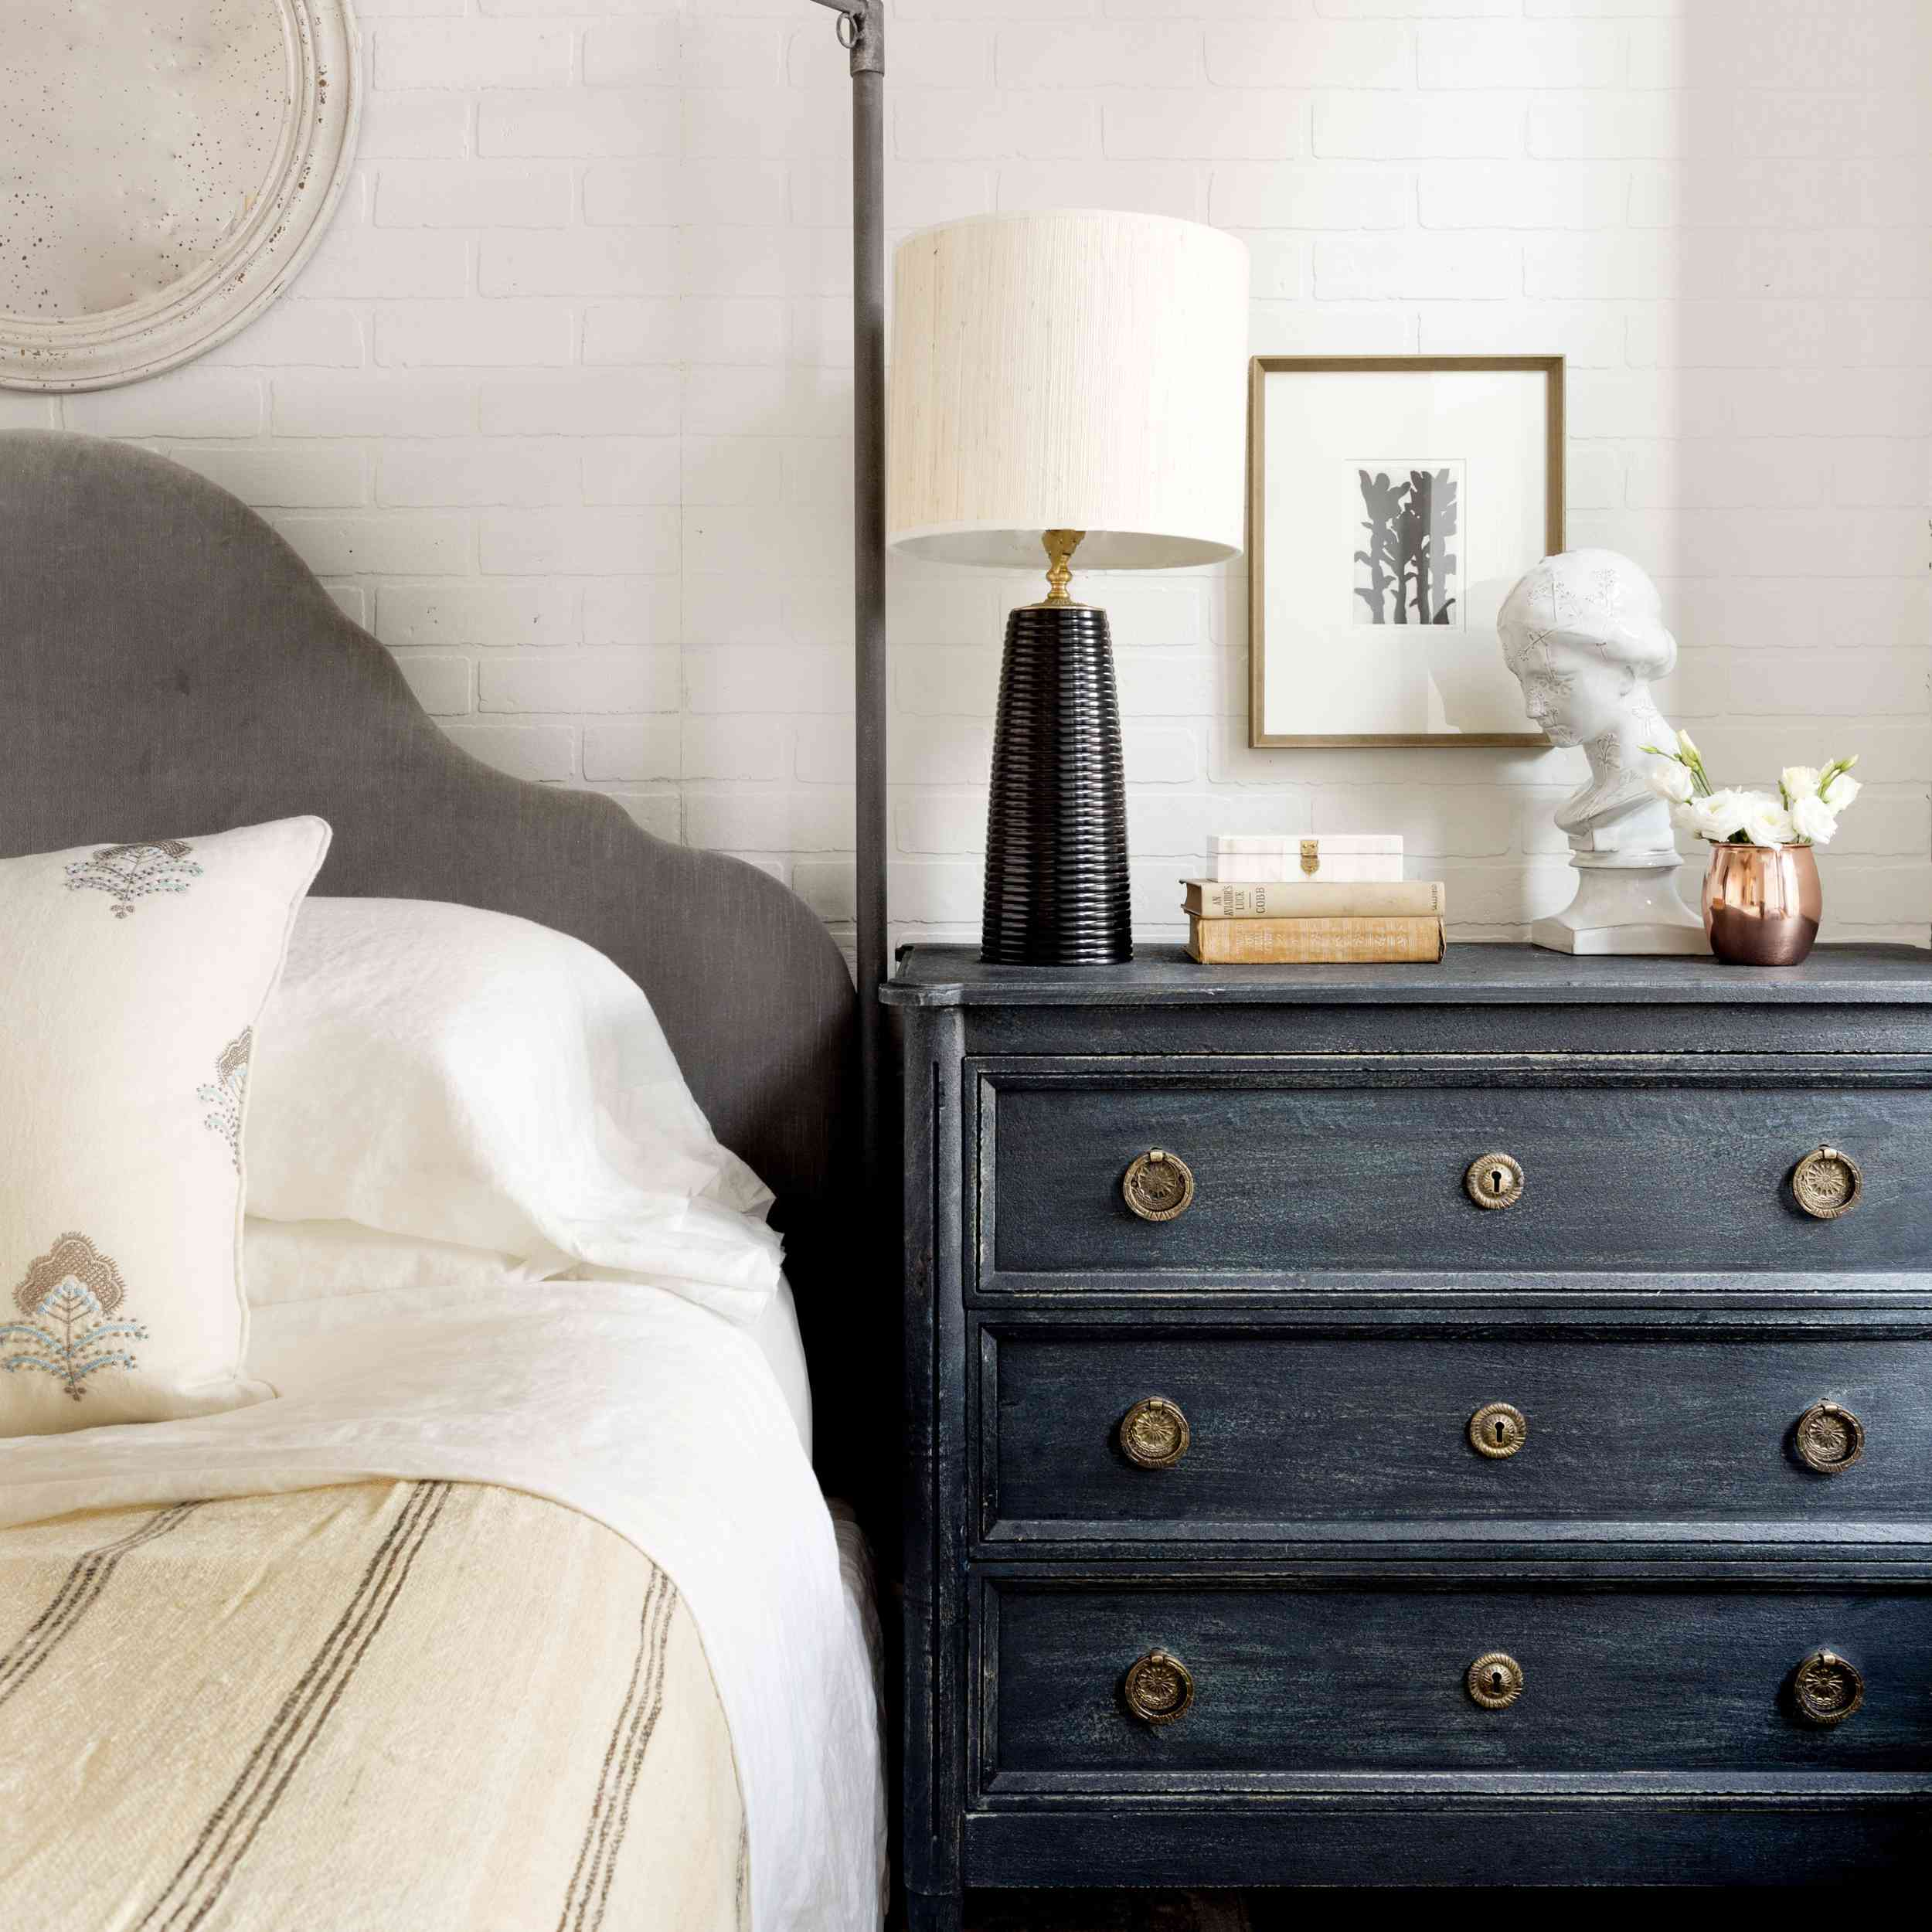 A bedroom with decor from different eras